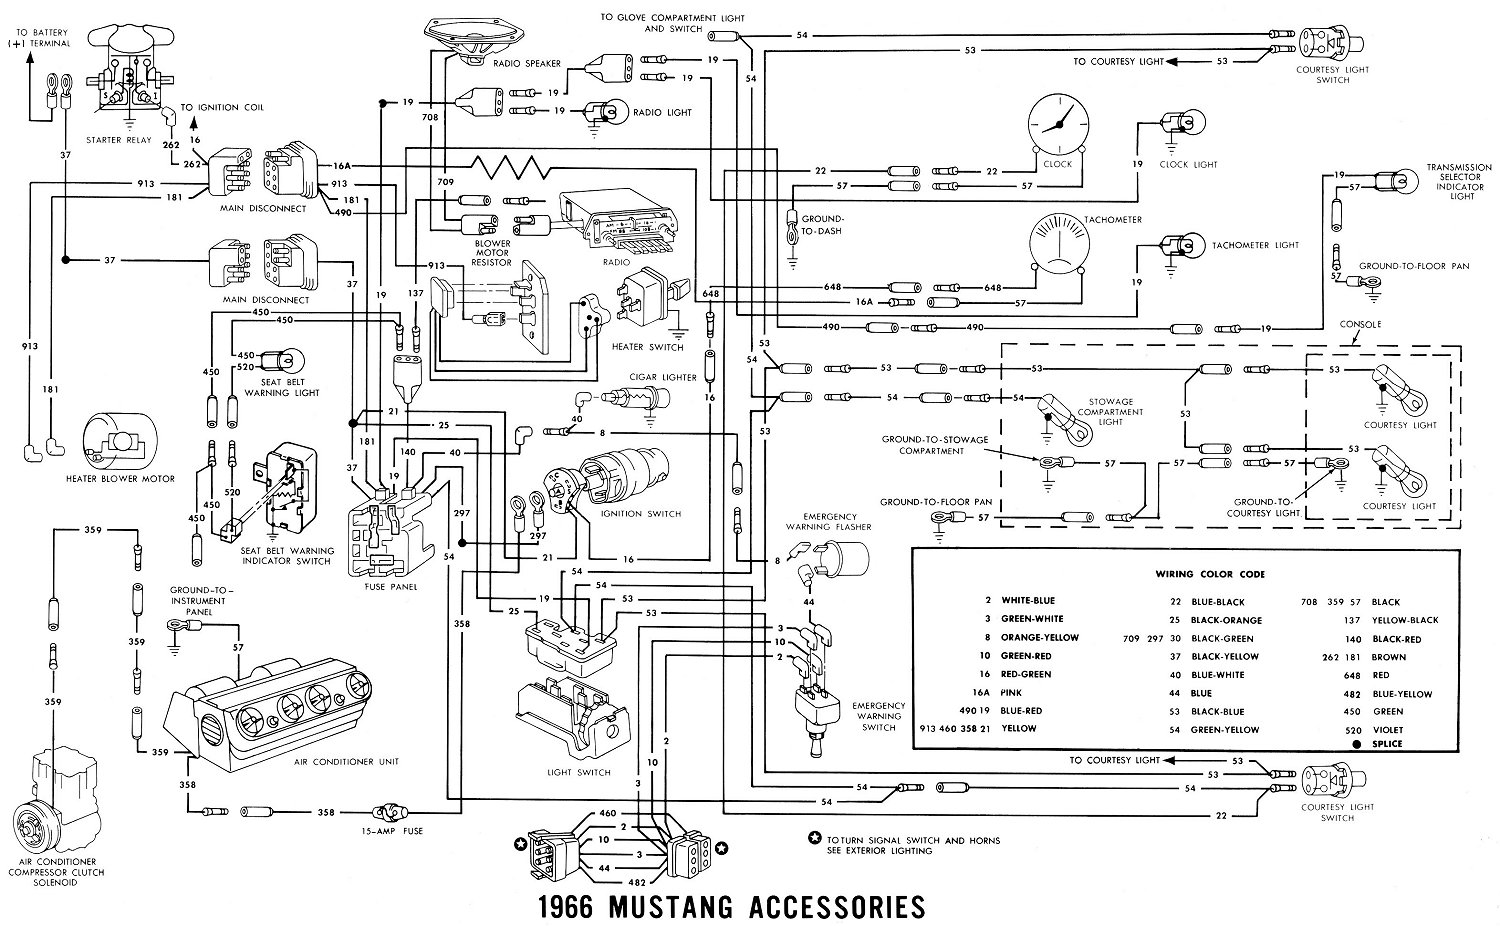 66 mustang engine wiring diagram 1966 mustang wiring diagrams - average joe restoration #15